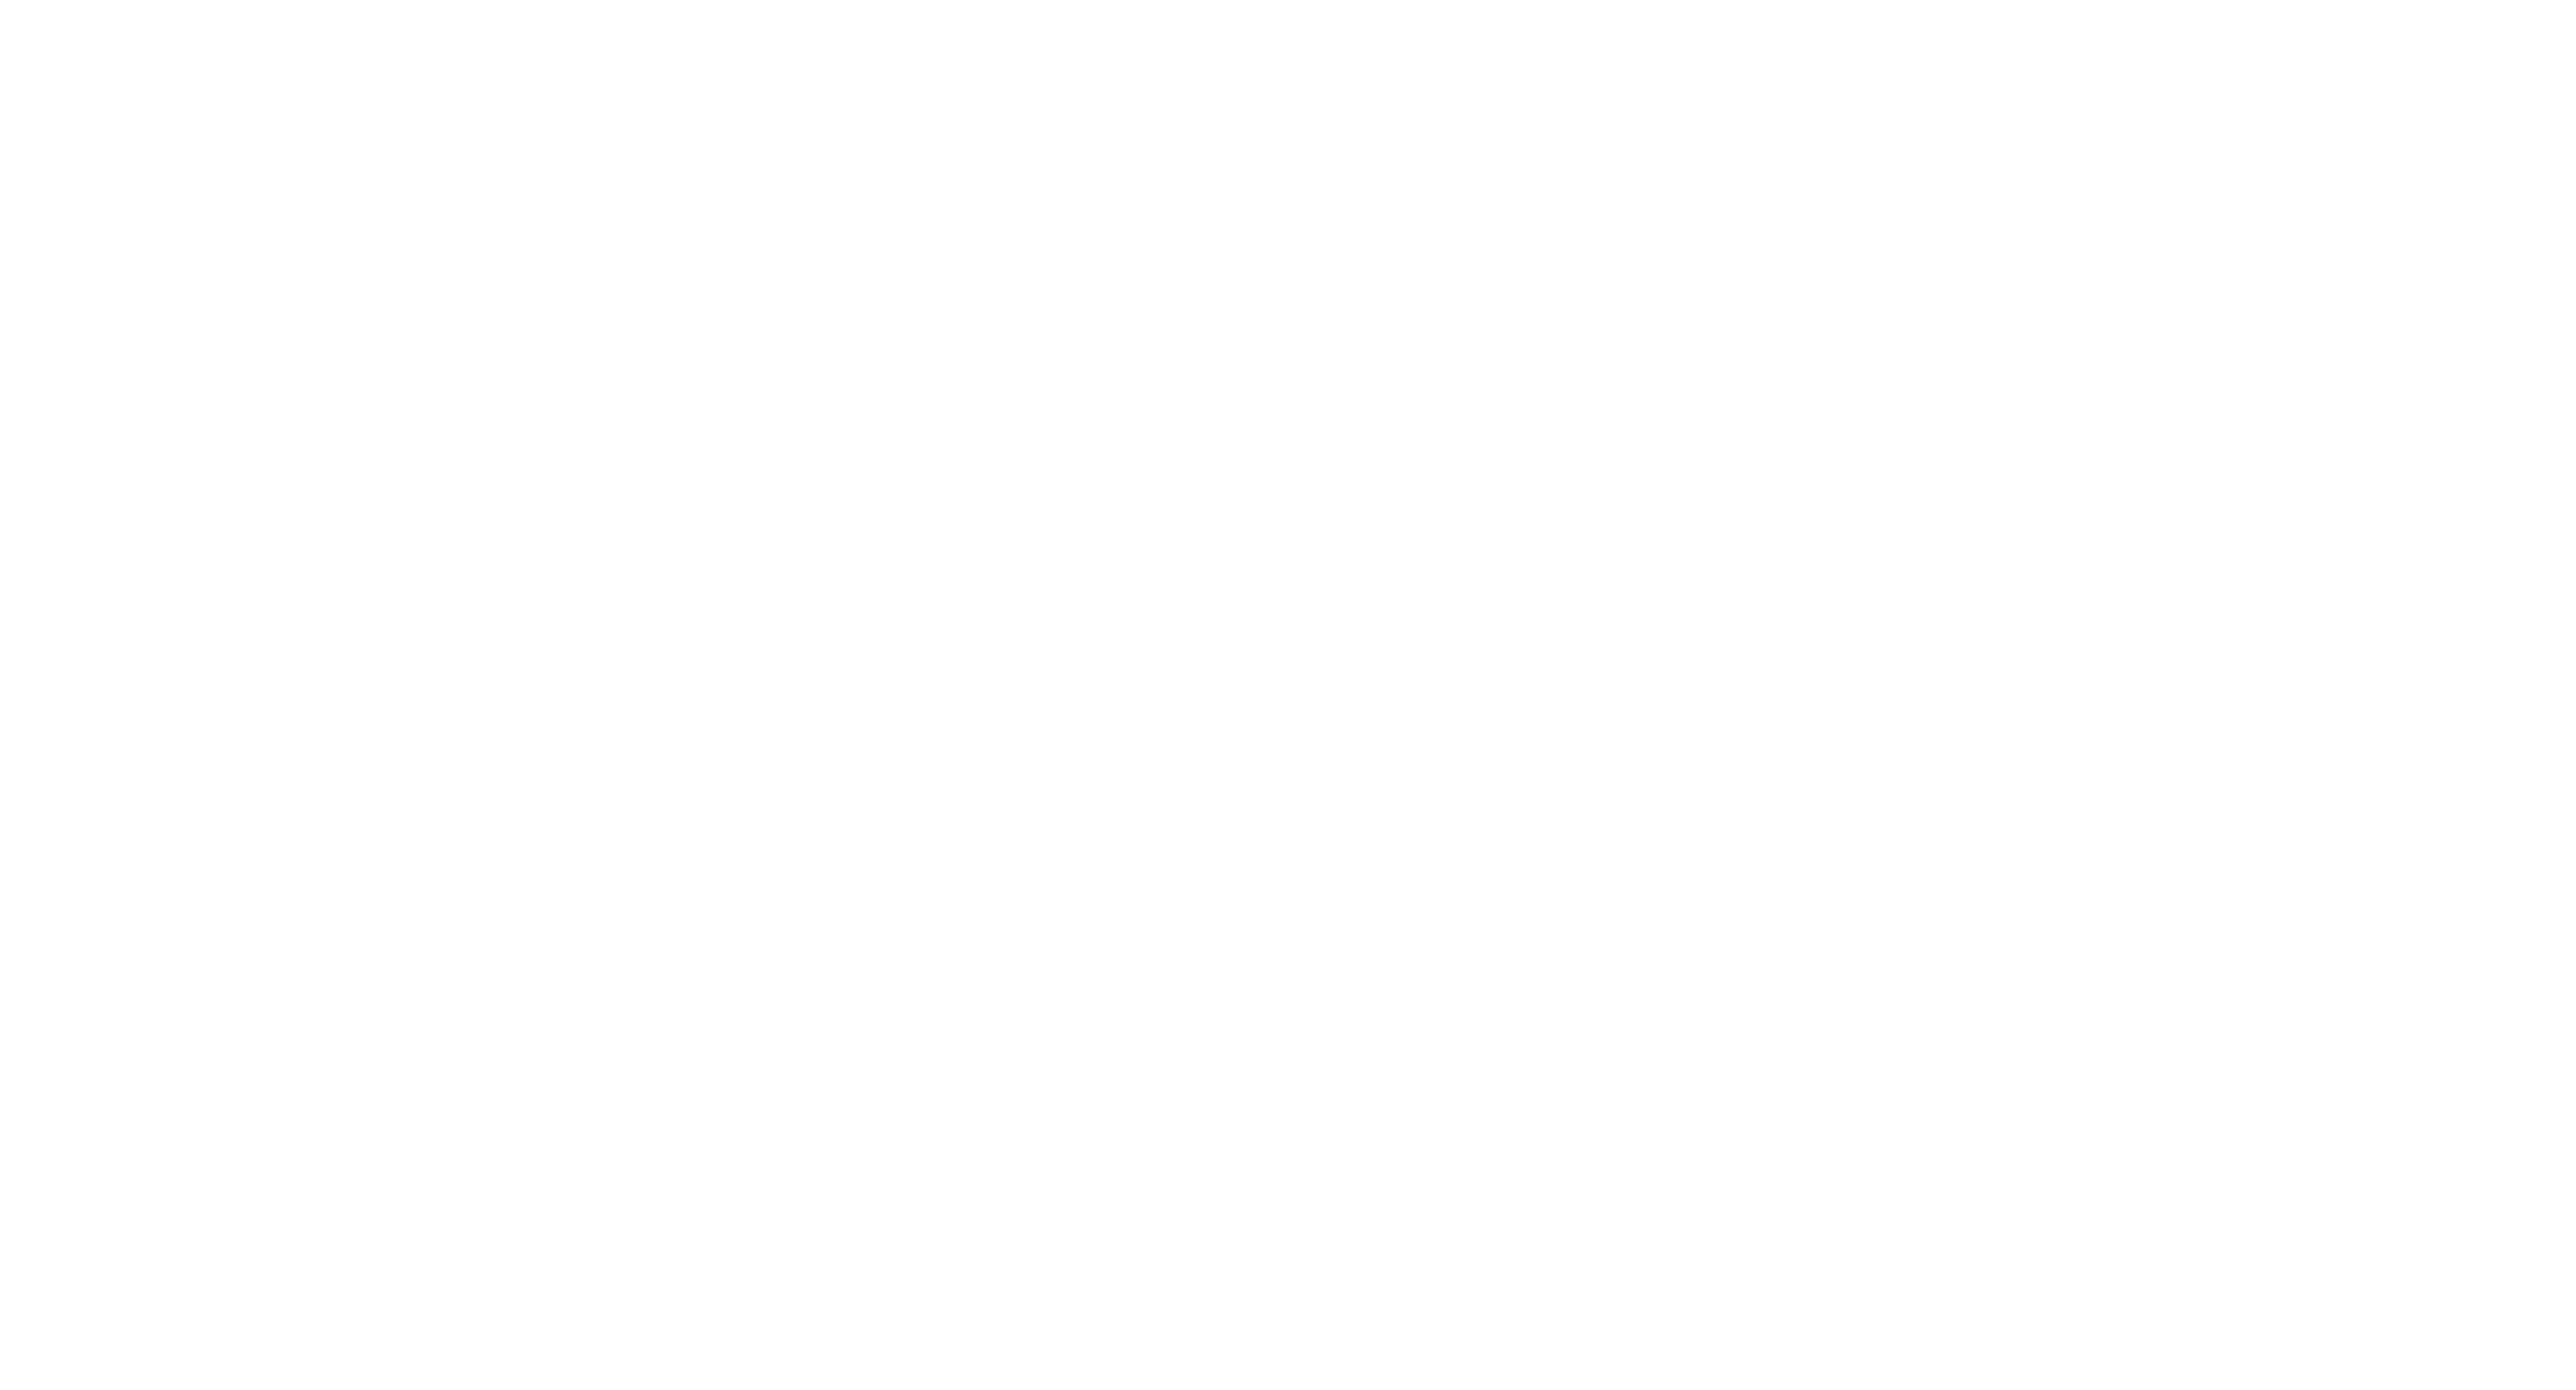 West Dorset Liberal Democrats